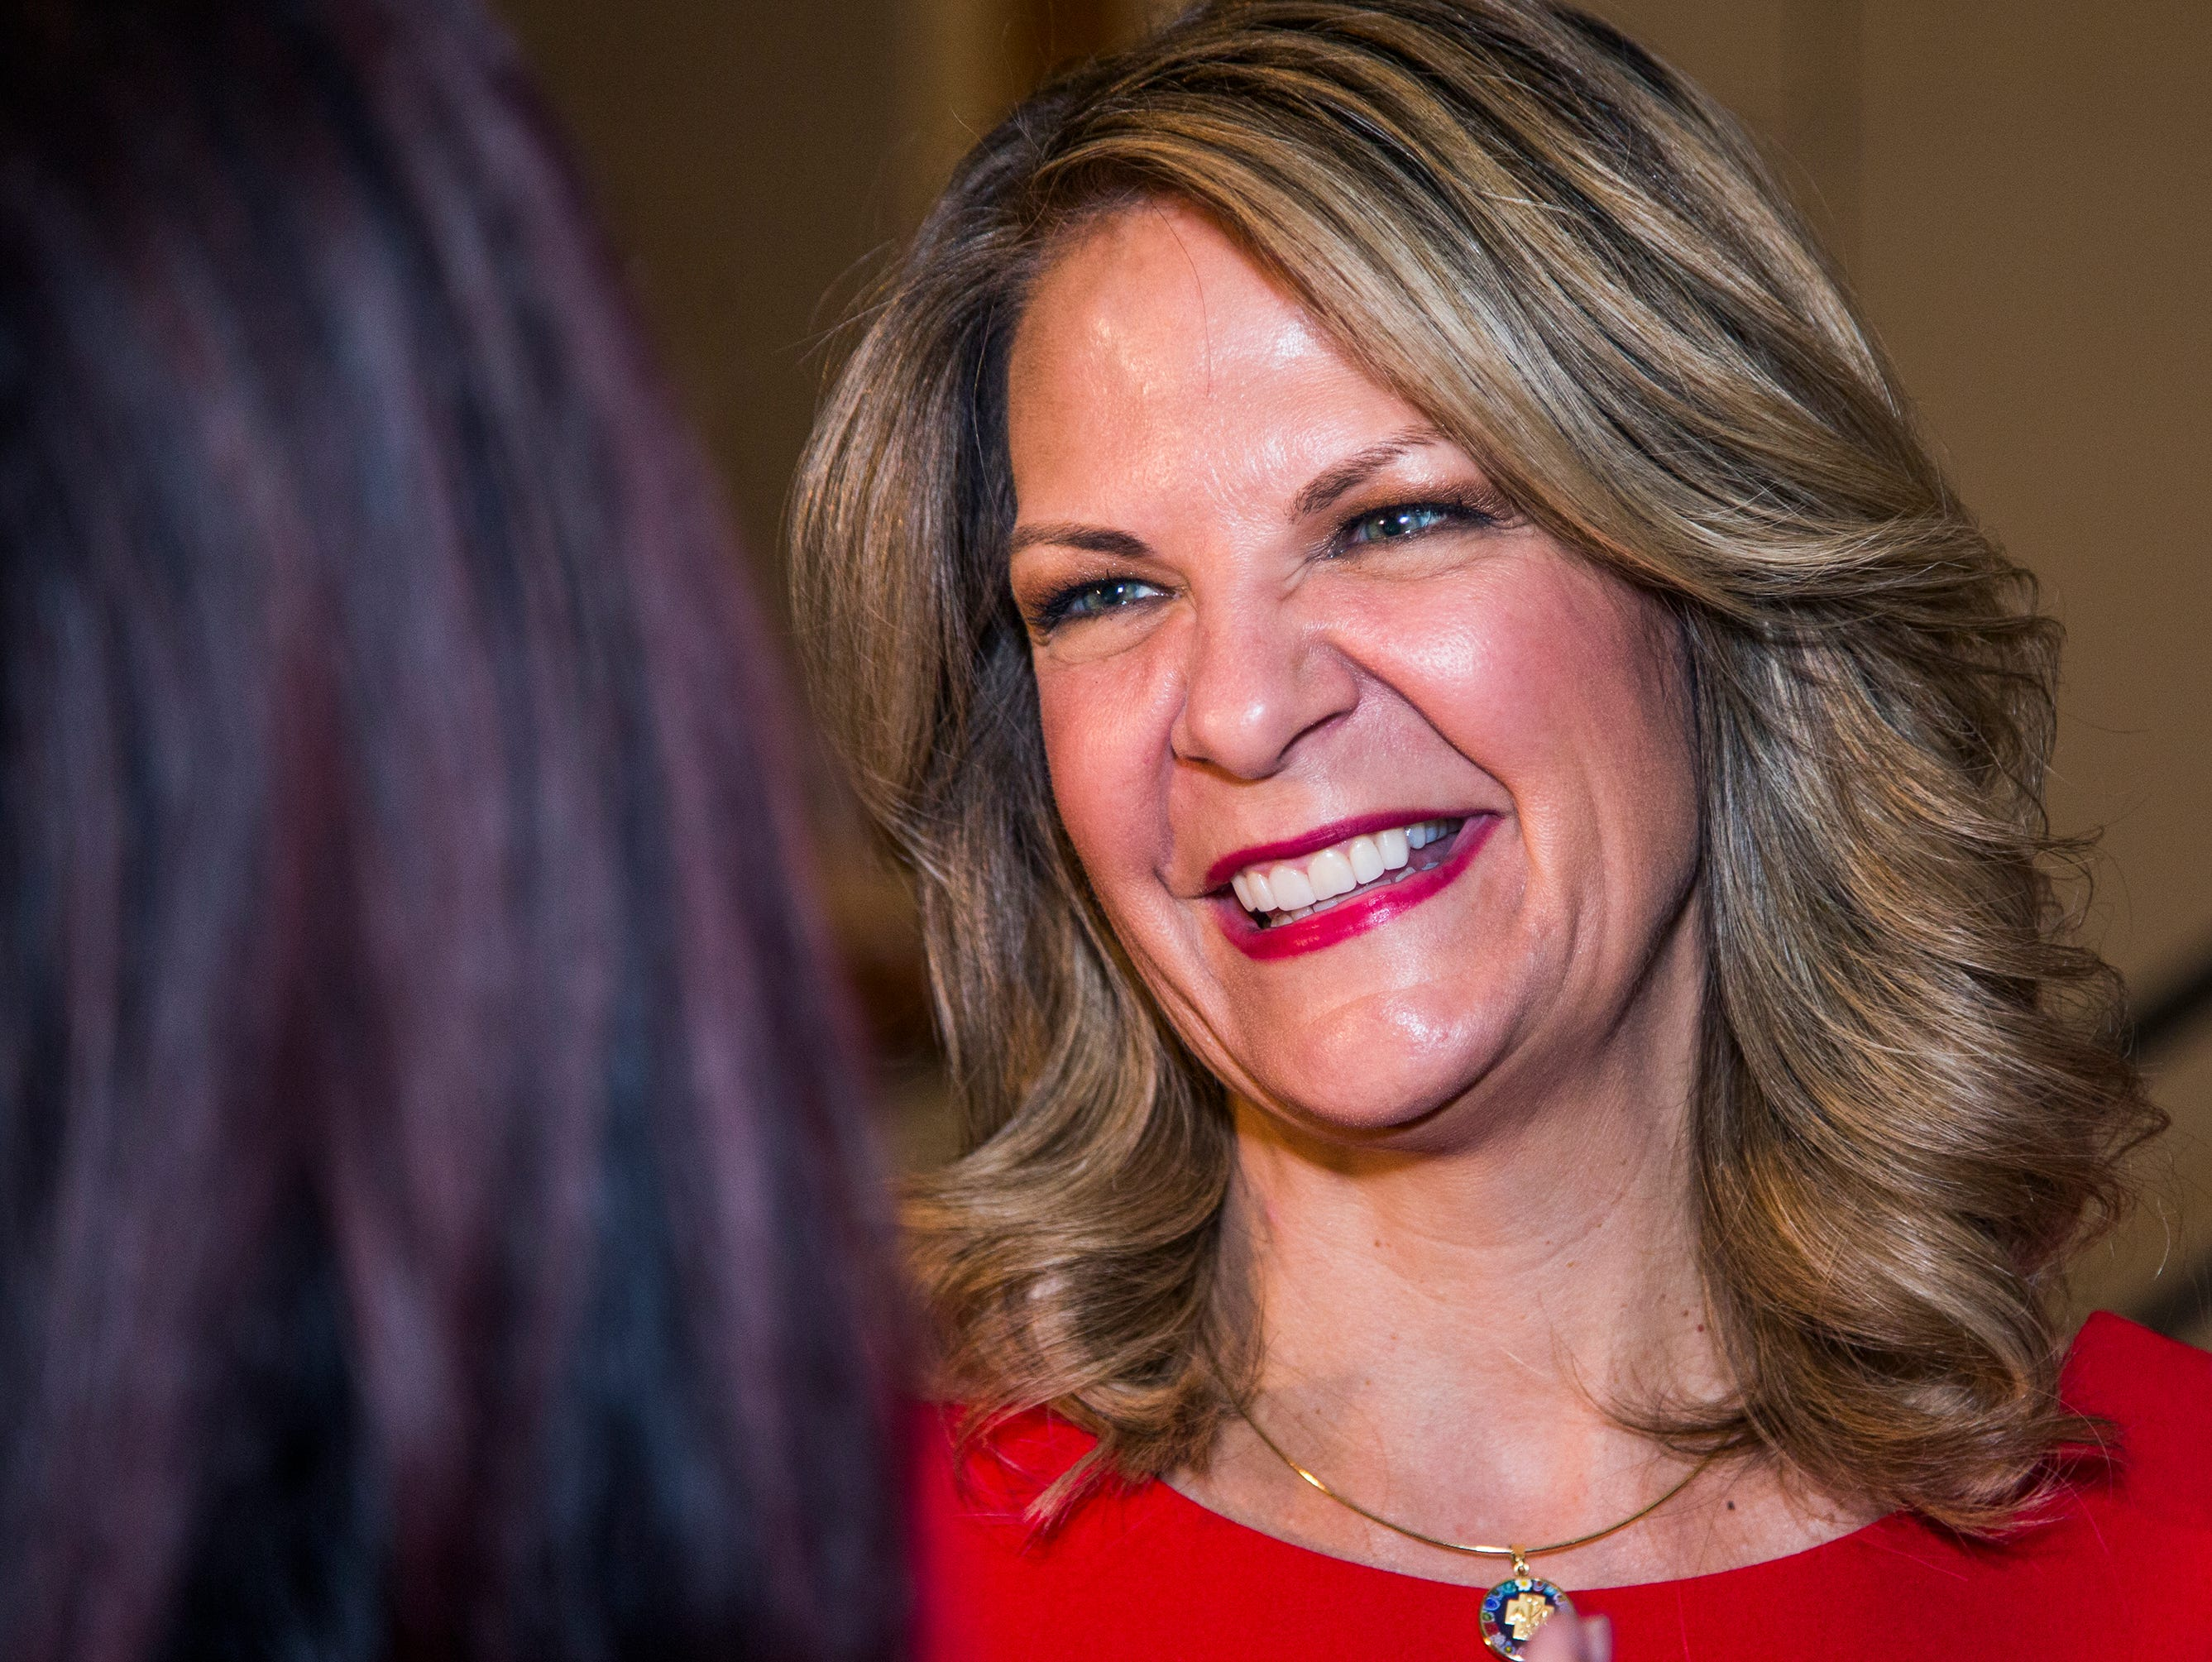 Kelli Ward greets supporters during a primary election night party at Embassy Suites Scottsdale, Aug. 28, 2018.